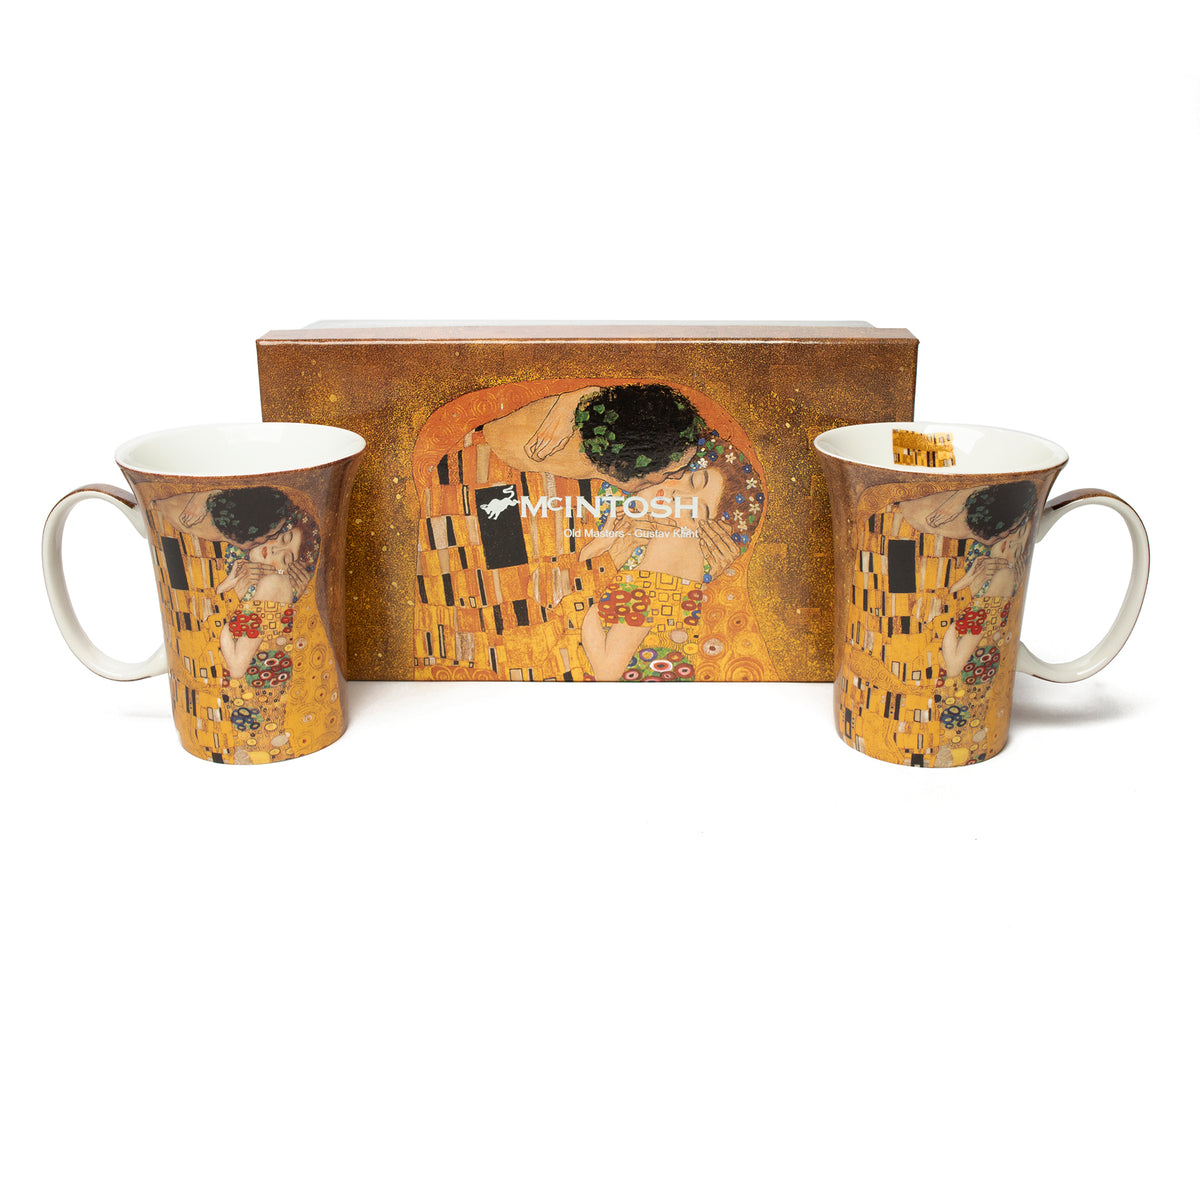 Pair of Fine Bone China Mugs featuring Klimt's The Kiss with gift box | Getty Store